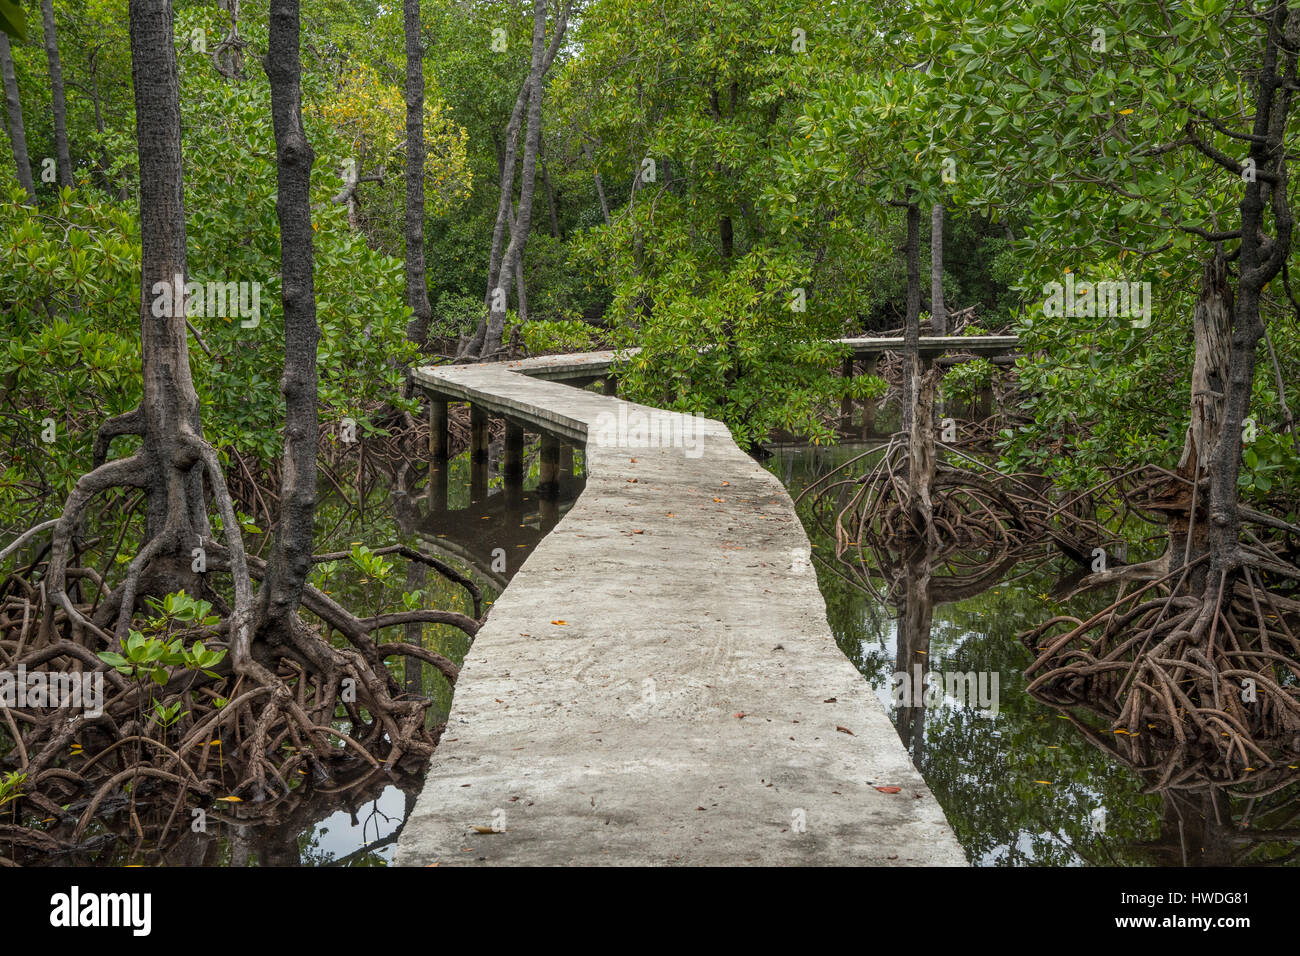 Boardwalk in Mangroves on Pulau Sulat, Lombok, Indonesia - Stock Image